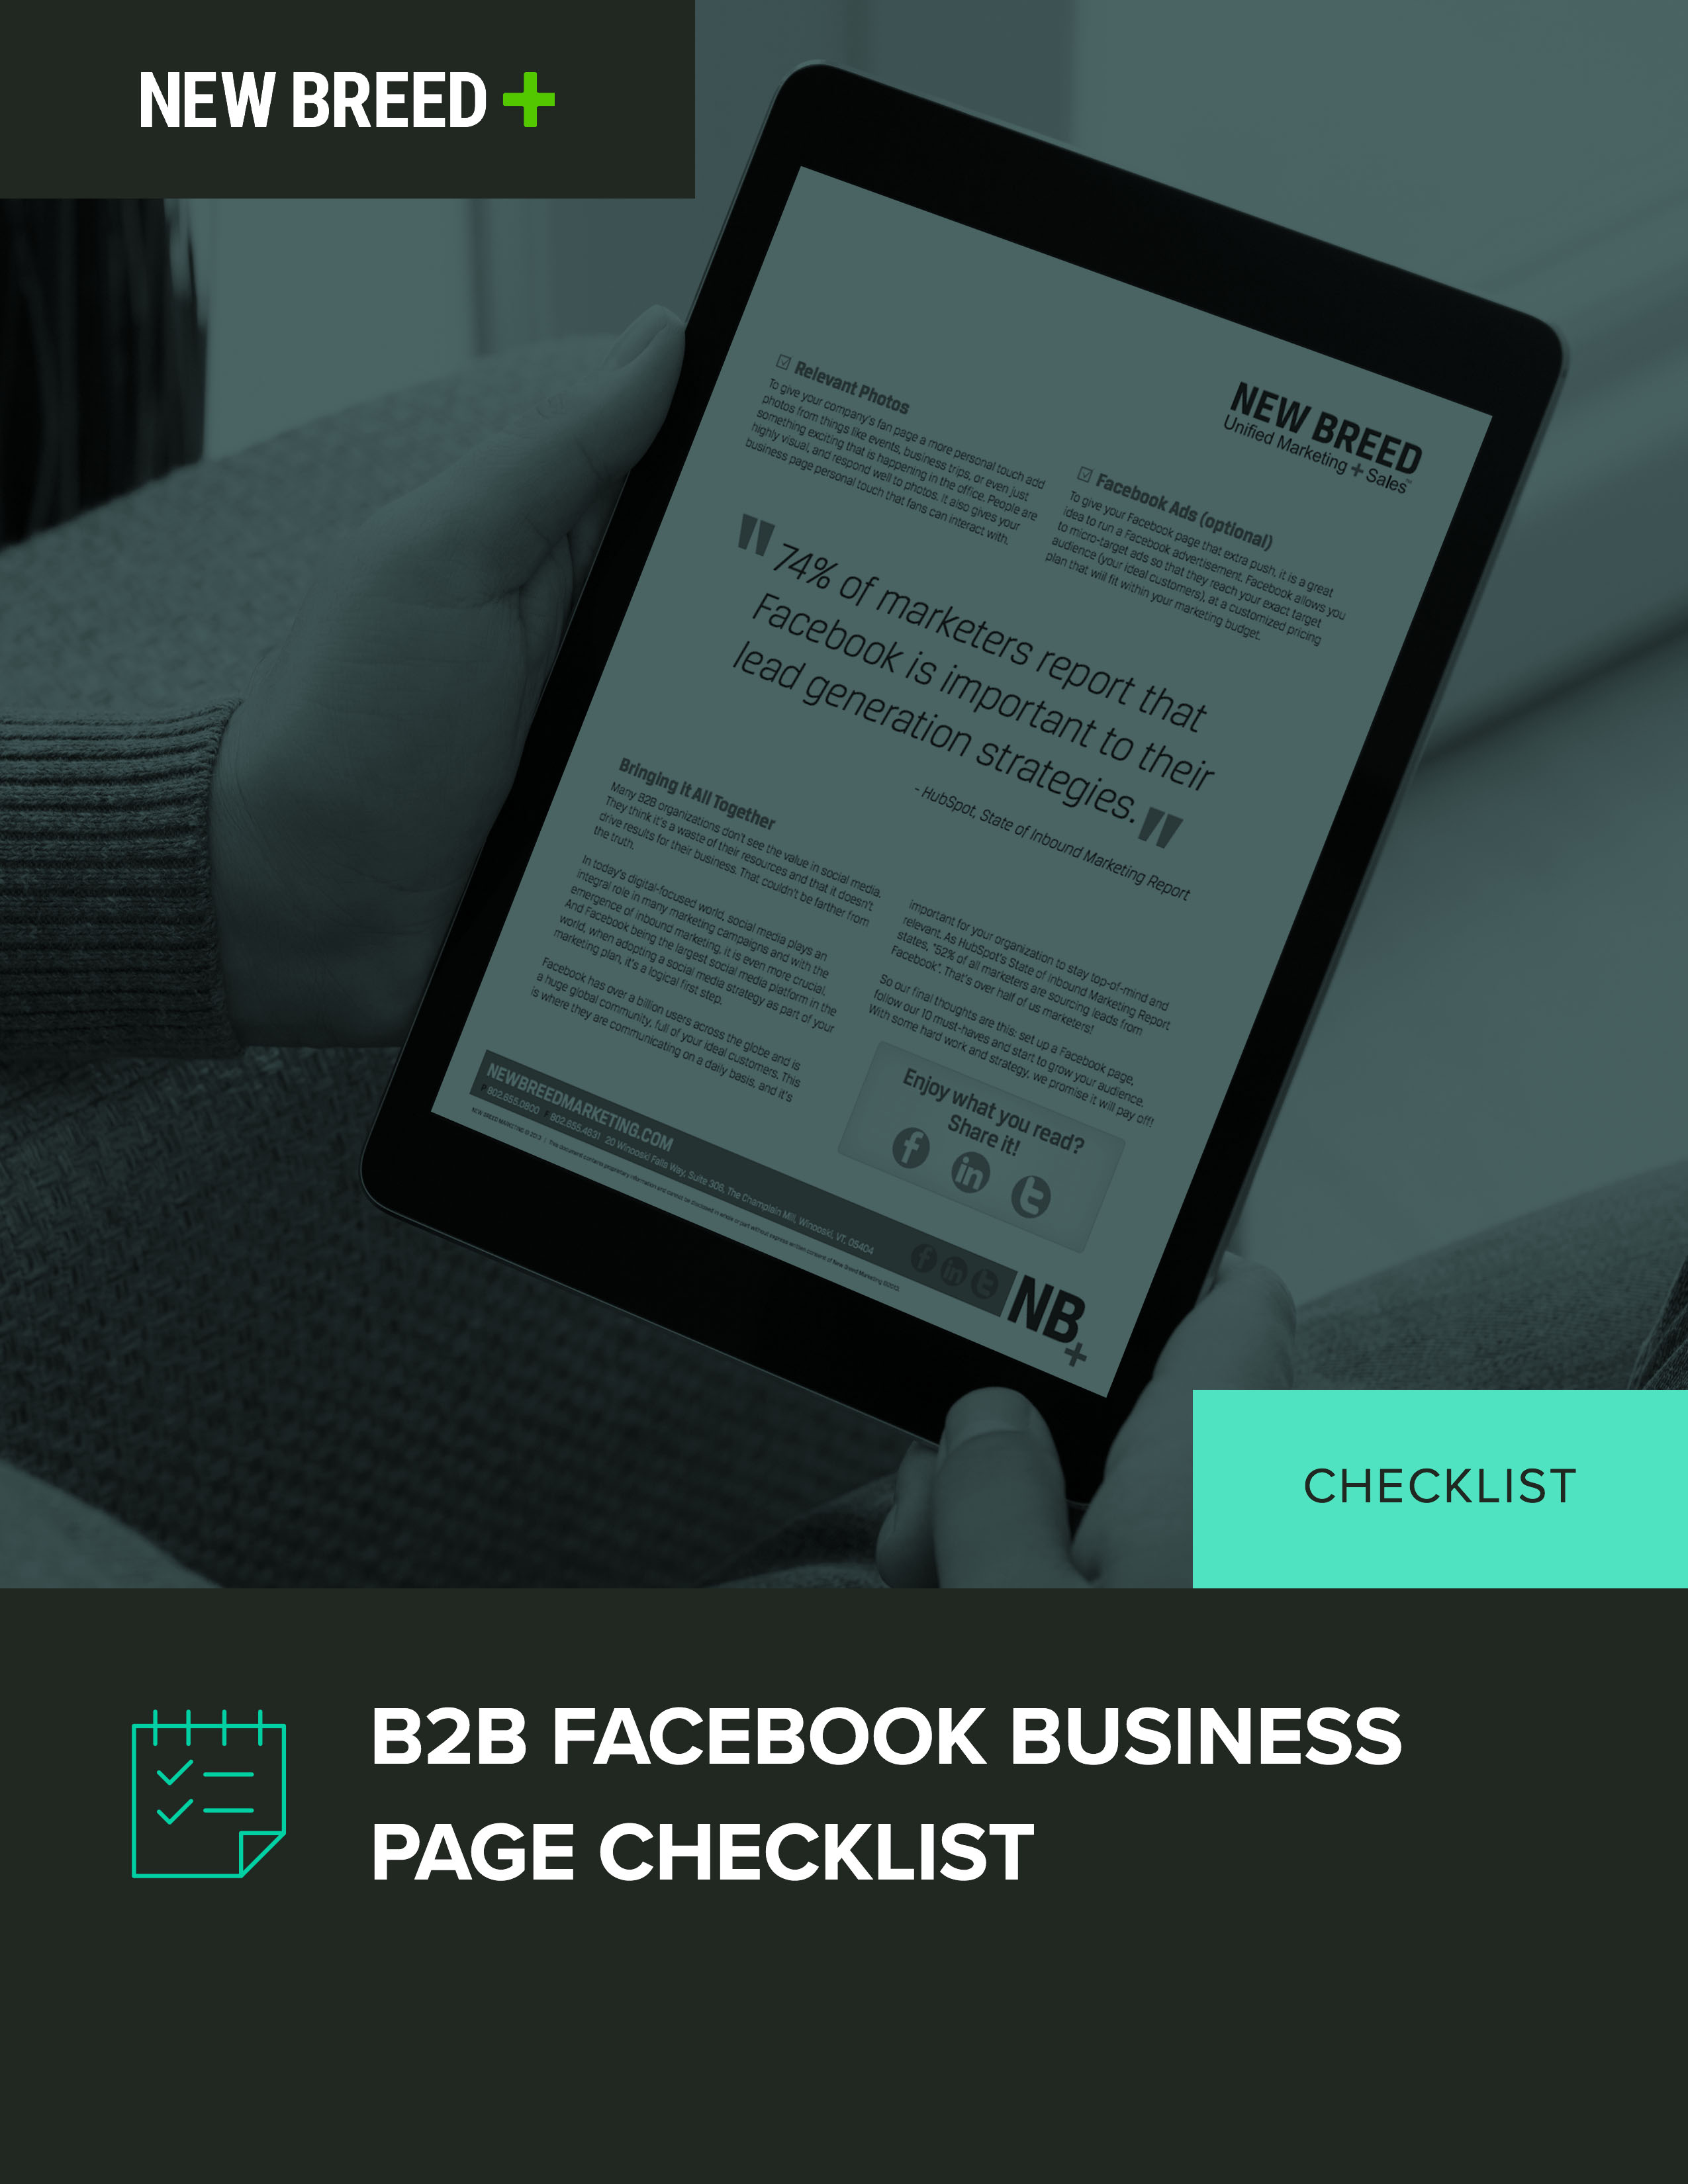 B2B Facebook Business Page Checklist.jpg